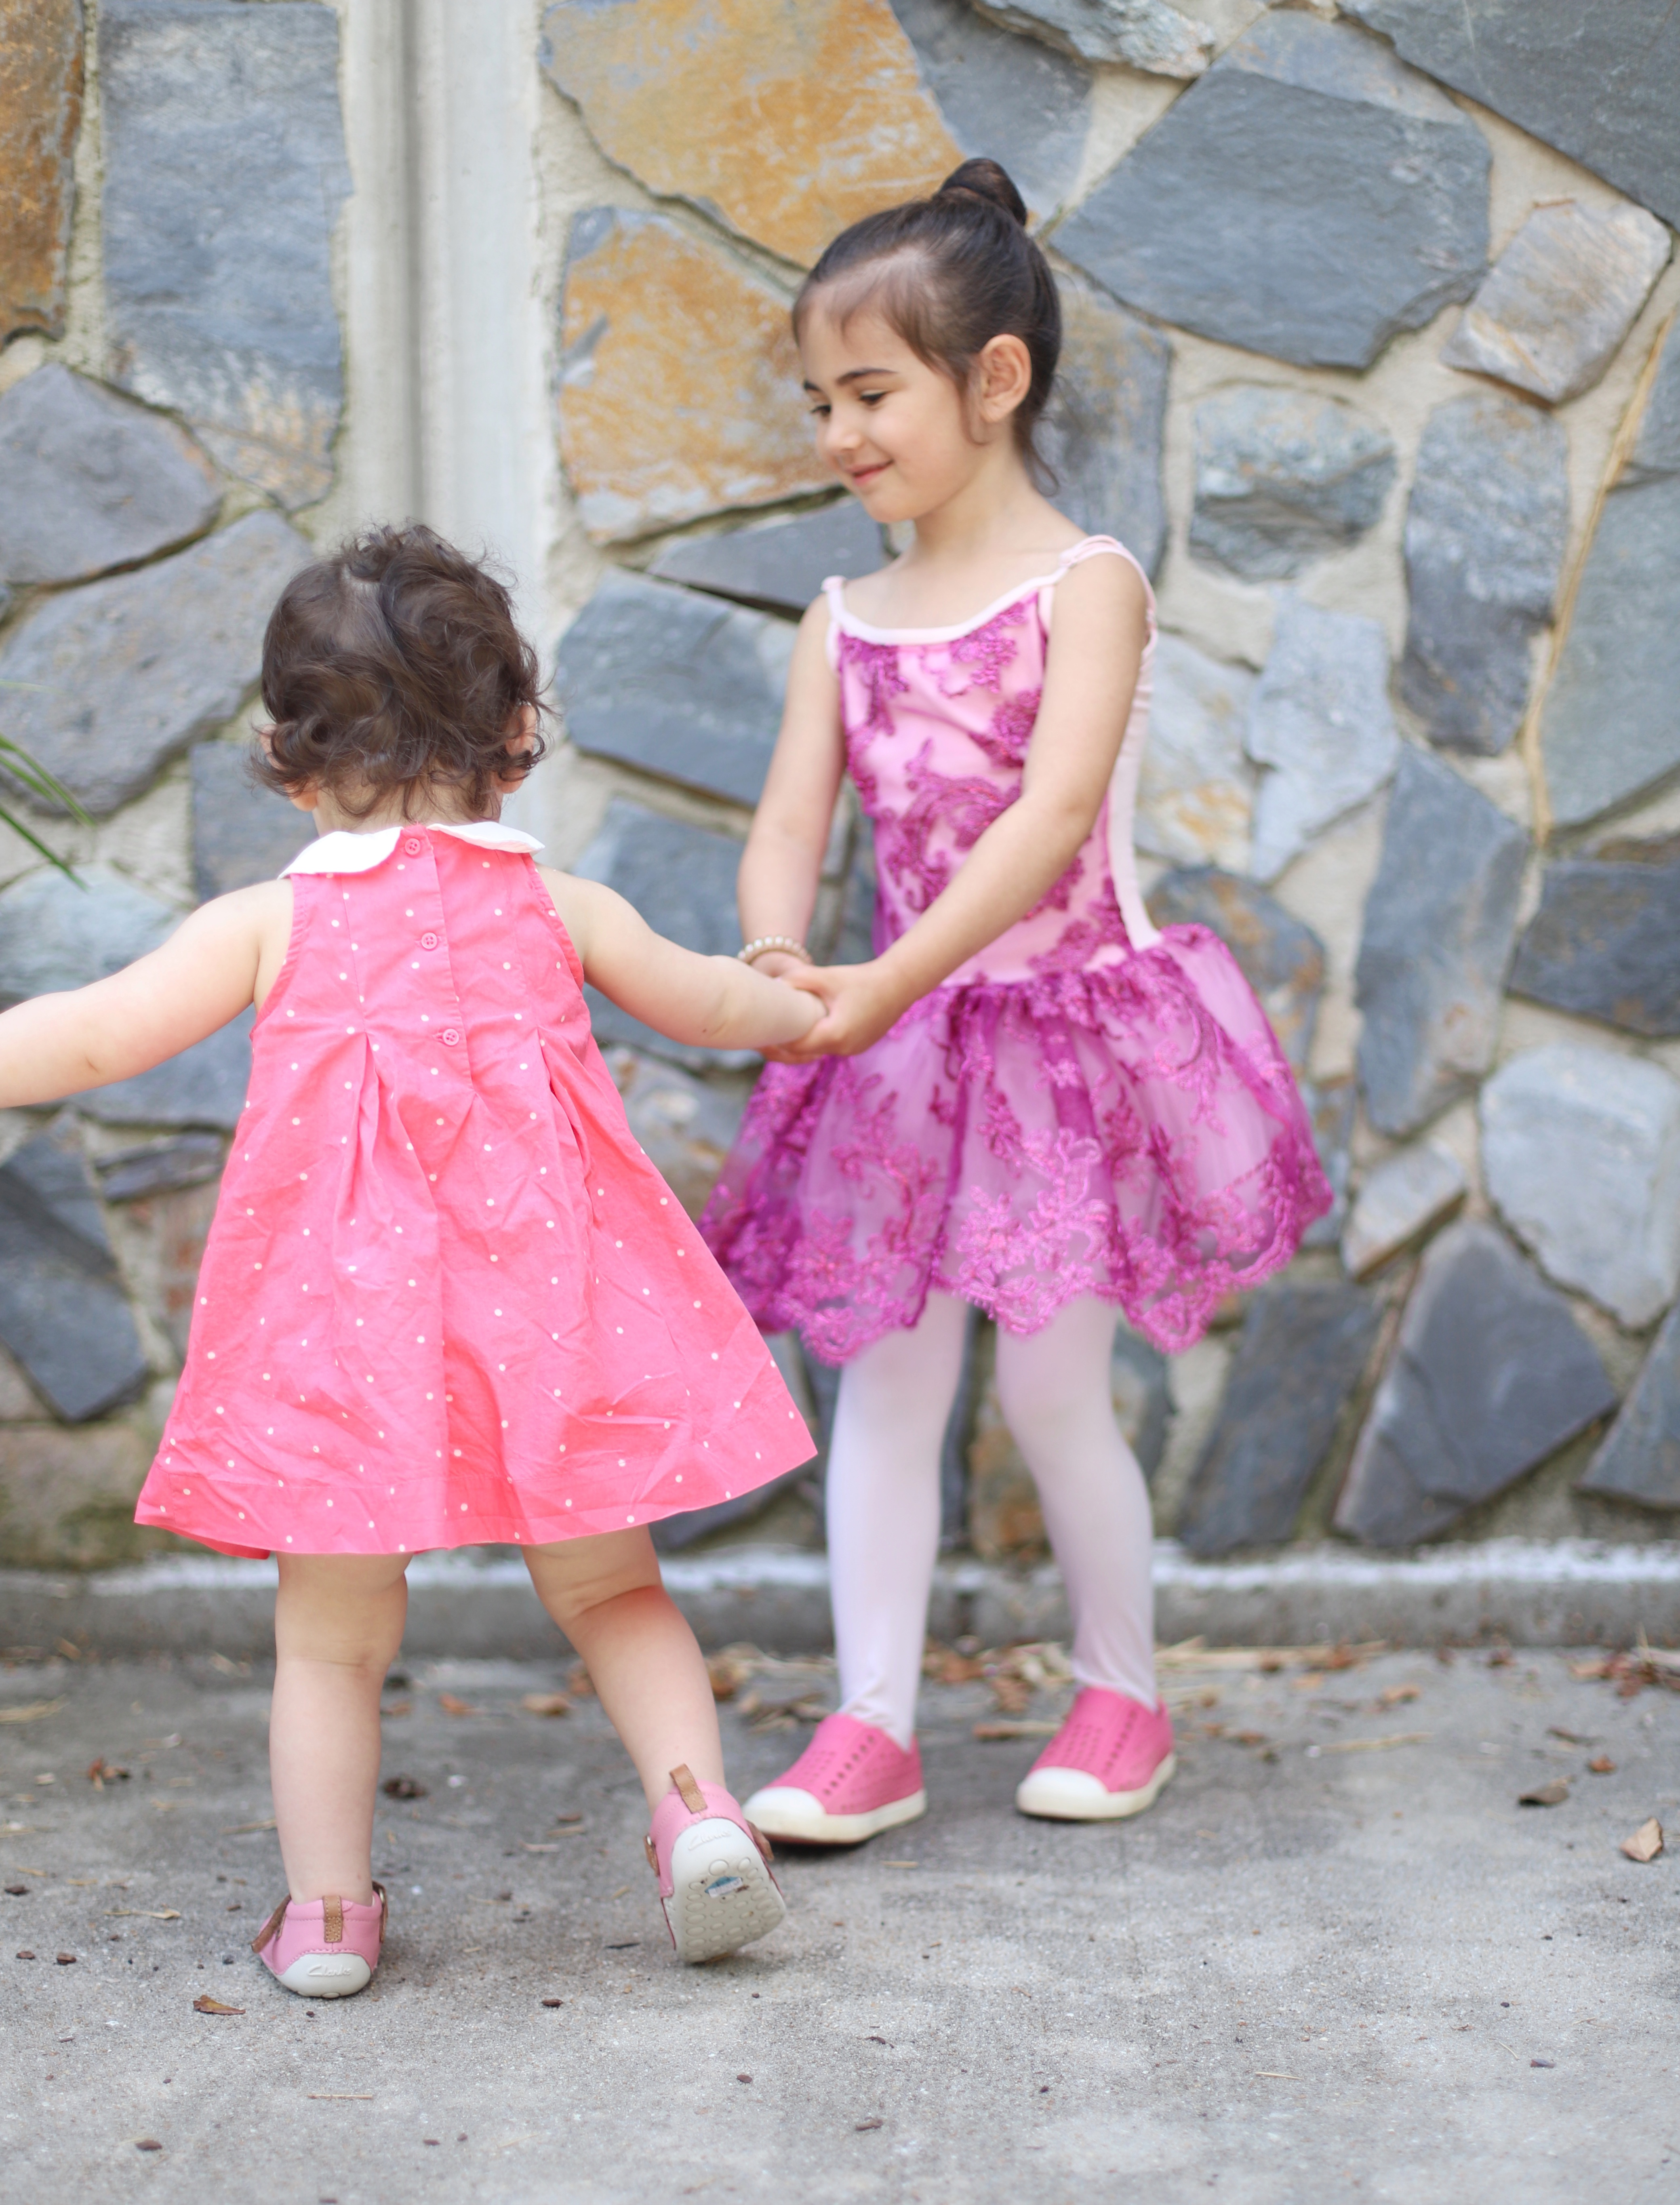 A Big Week of Last Days - Preschool Graduation and Ballet Recital | glitterinc.com | @glitterinc